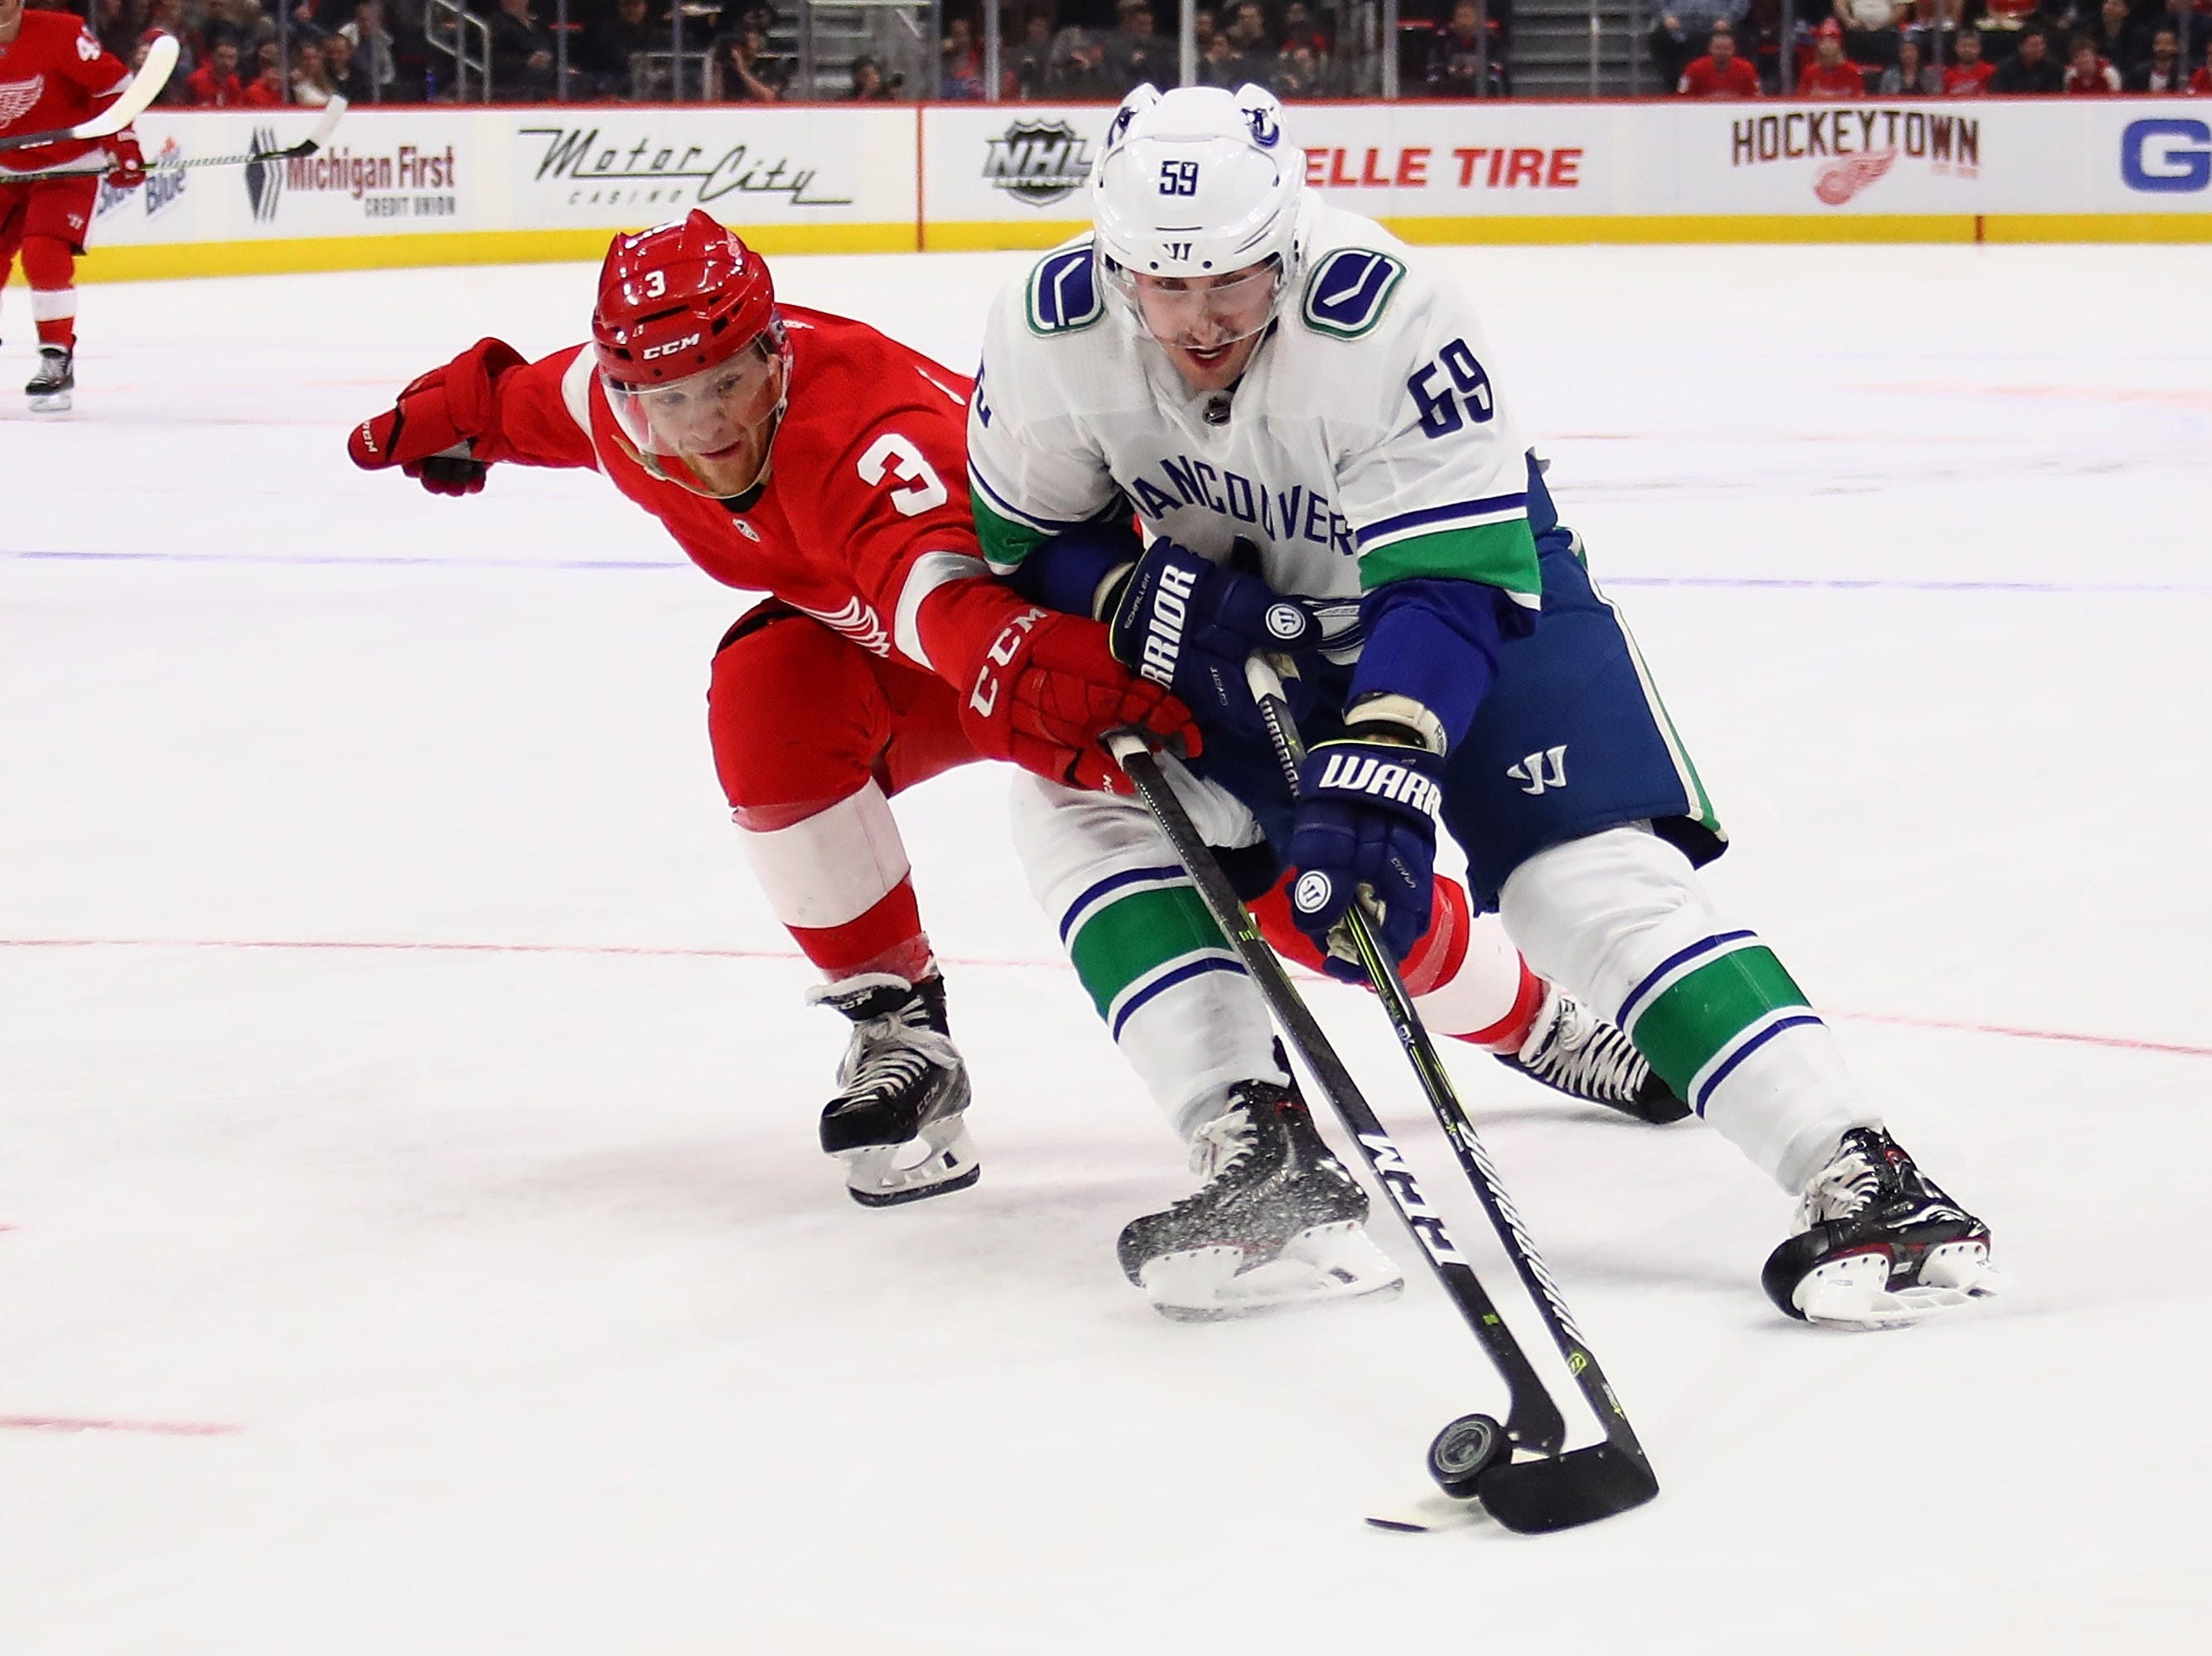 Tim Schaller (59) of the Vancouver Canucks tries to get around the stick of Nick Jensen (3) of the Detroit Red Wings during the first period at Little Caesars Arena on November 06, 2018 in Detroit, Michigan.